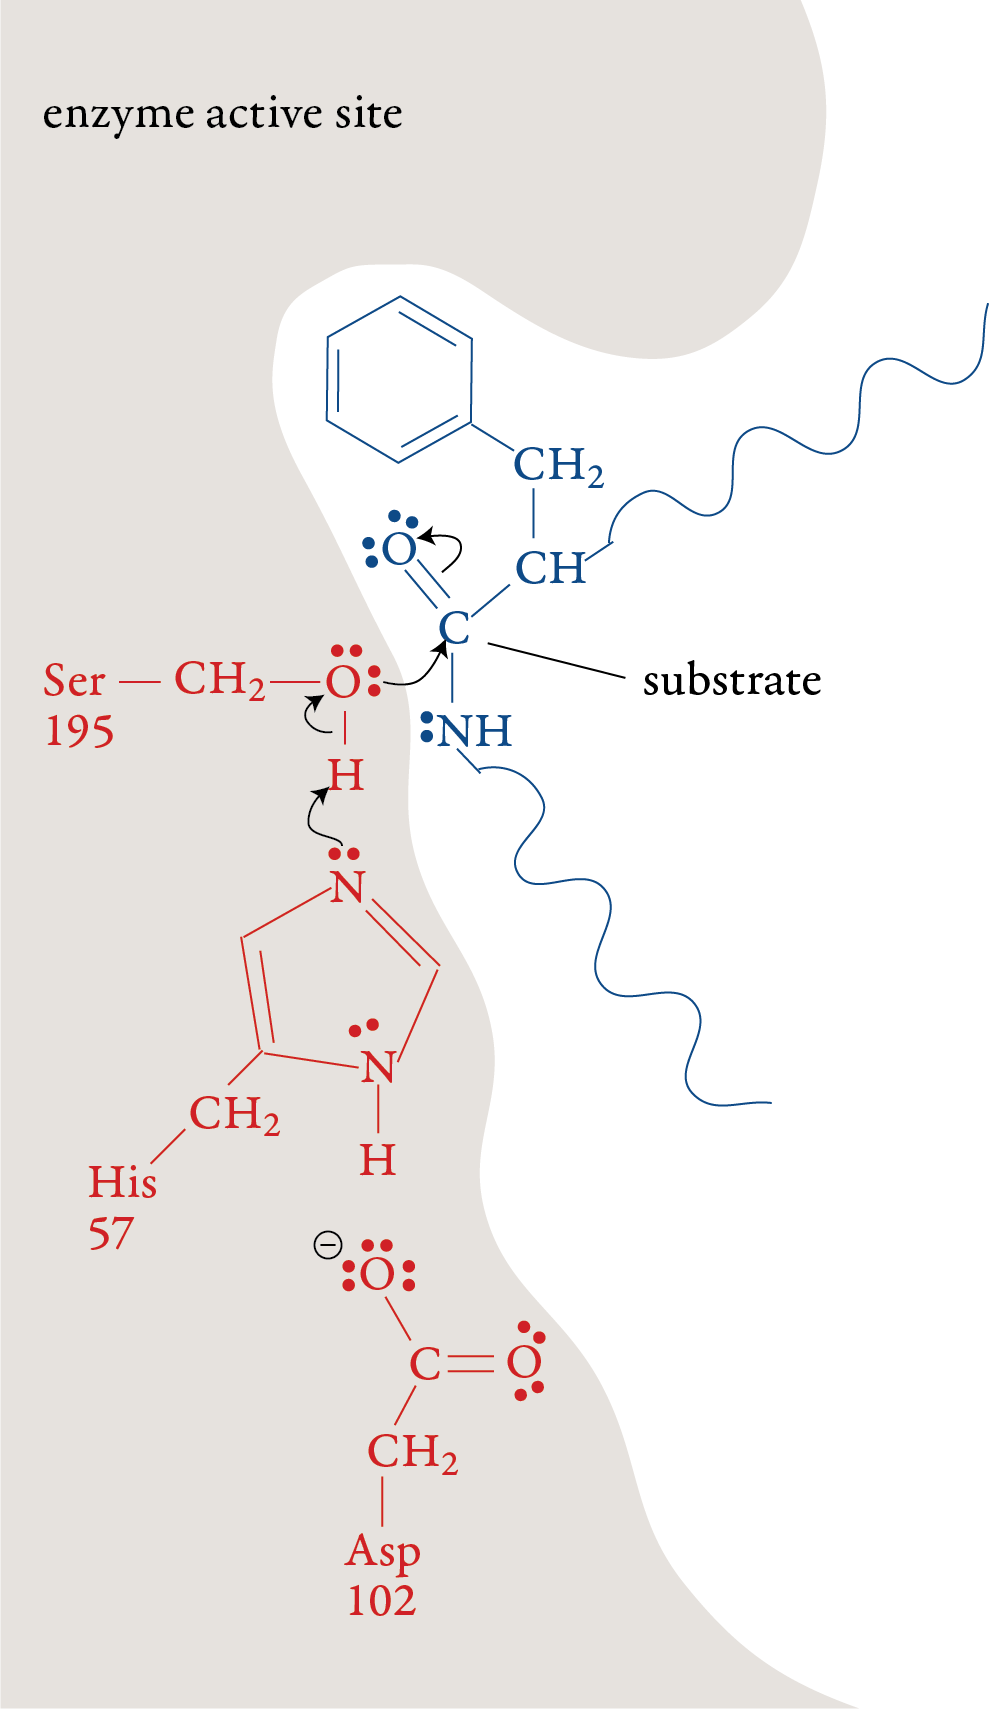 Image of first step in the chymotrypsin